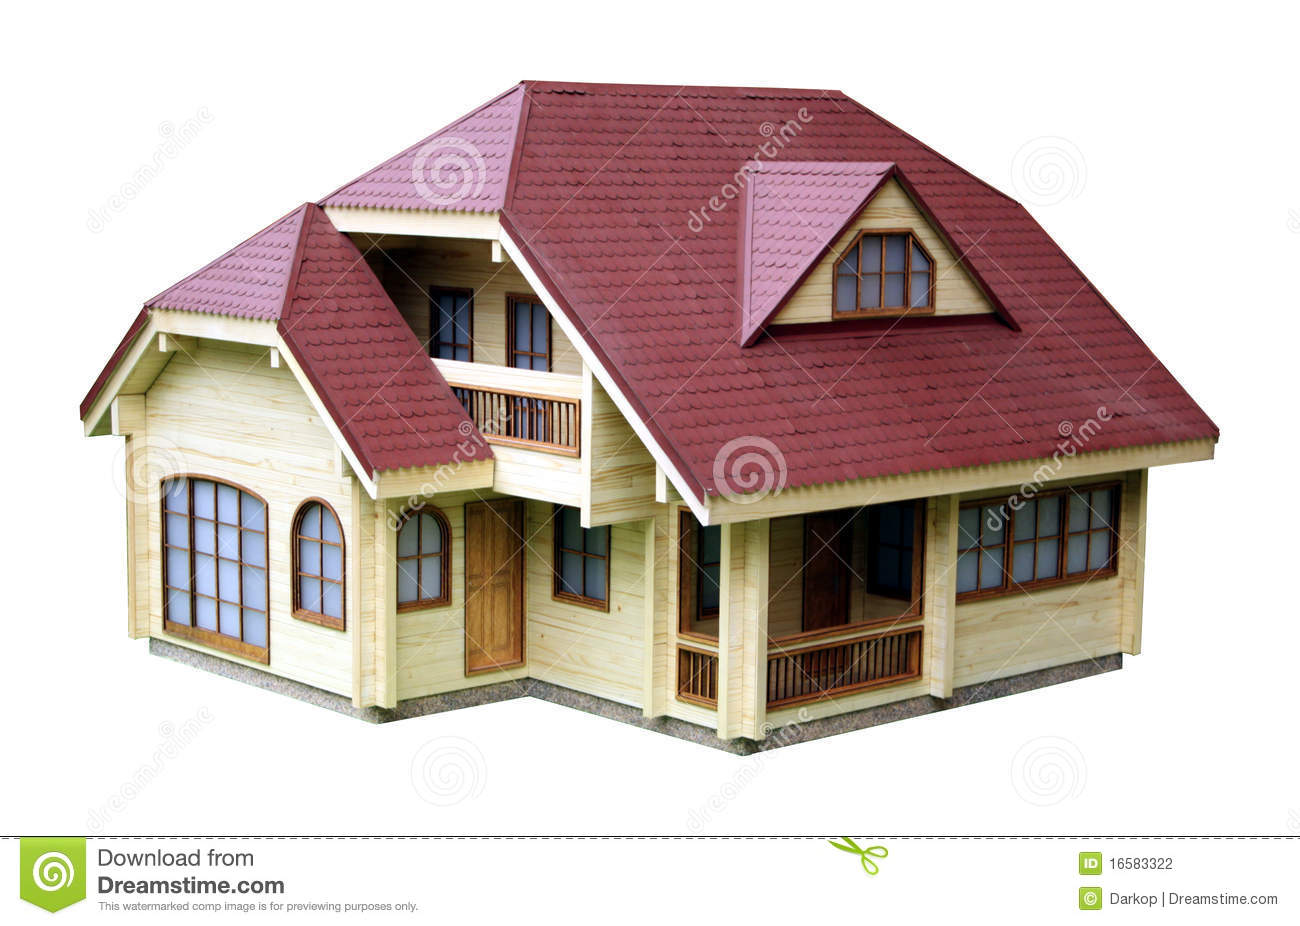 House model stock photography image 16583322 for The model house